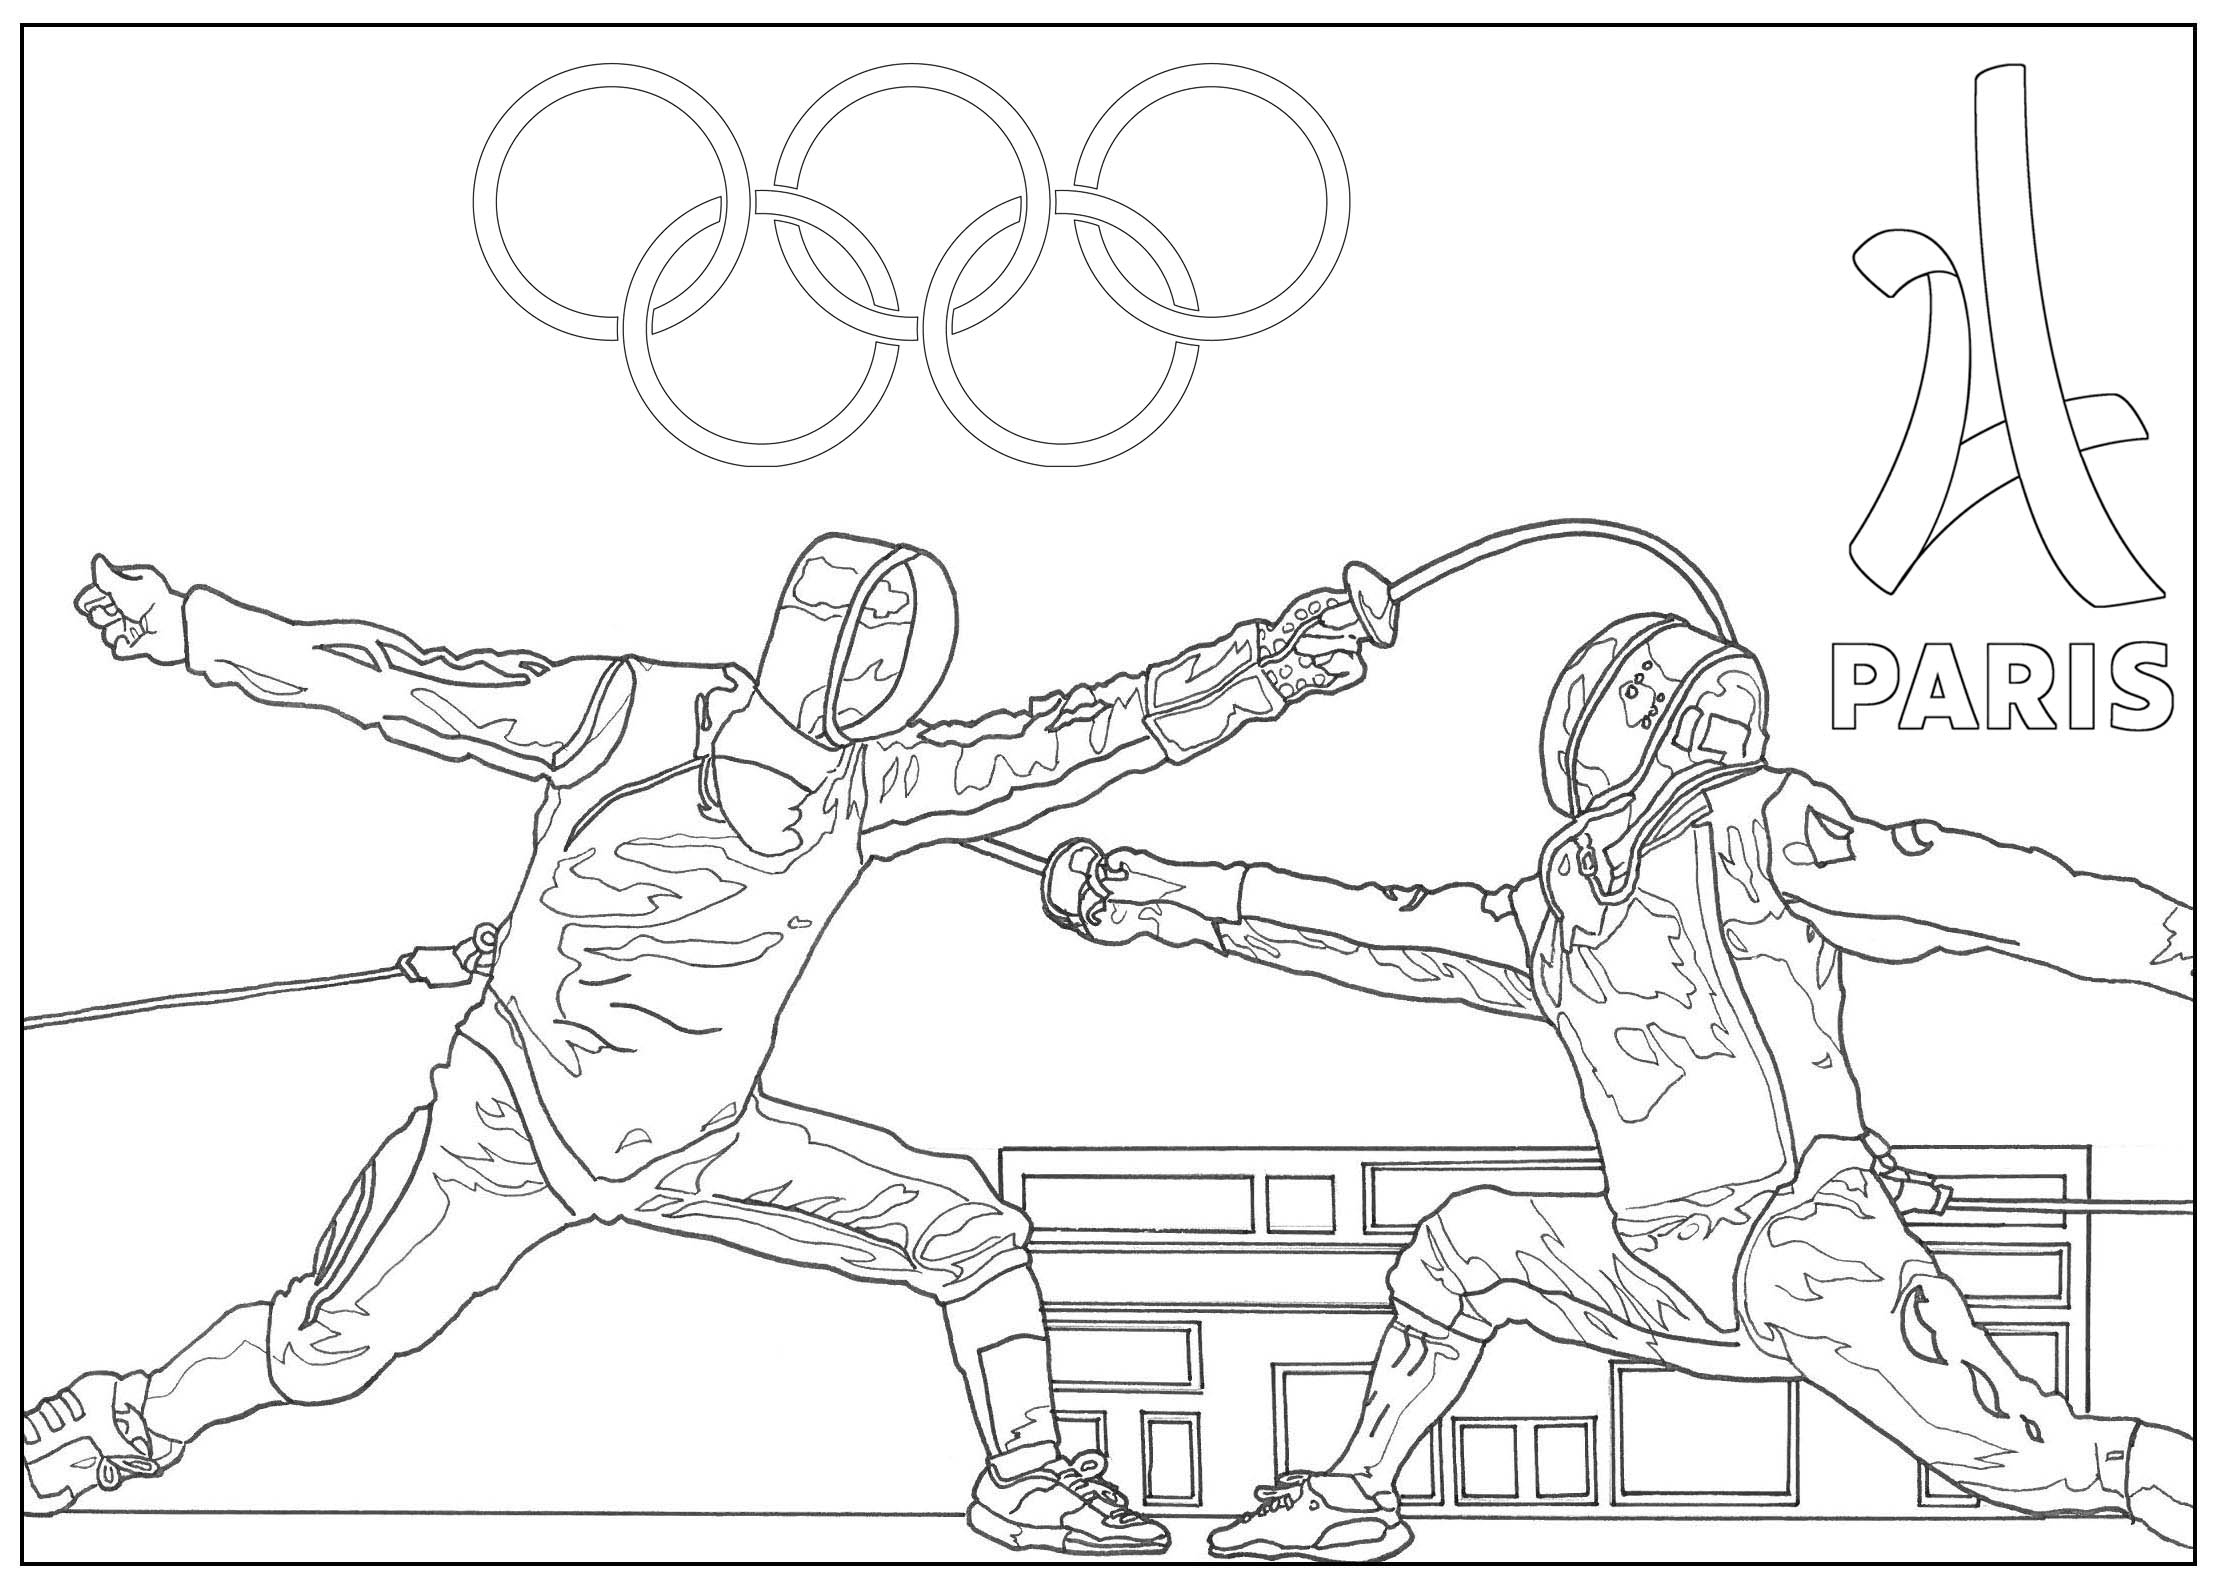 Coloring page for the 2024 Paris Olympic games : Fencing